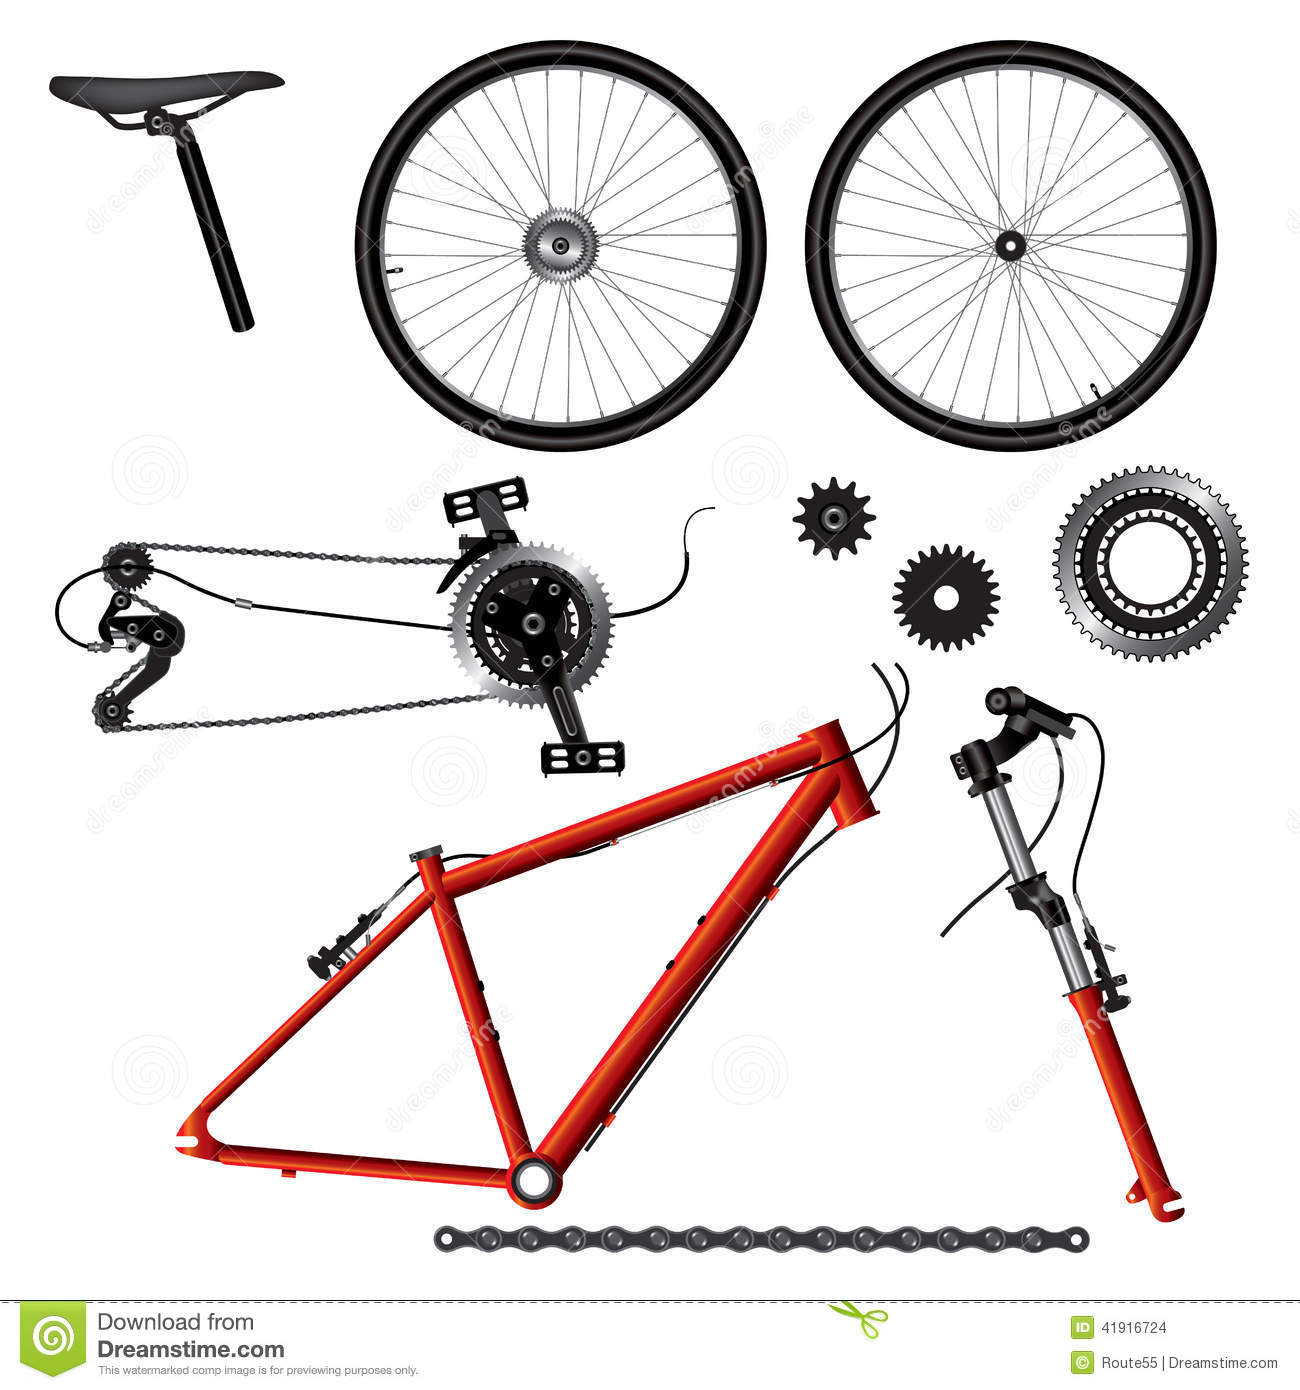 Illustration of bicycl...